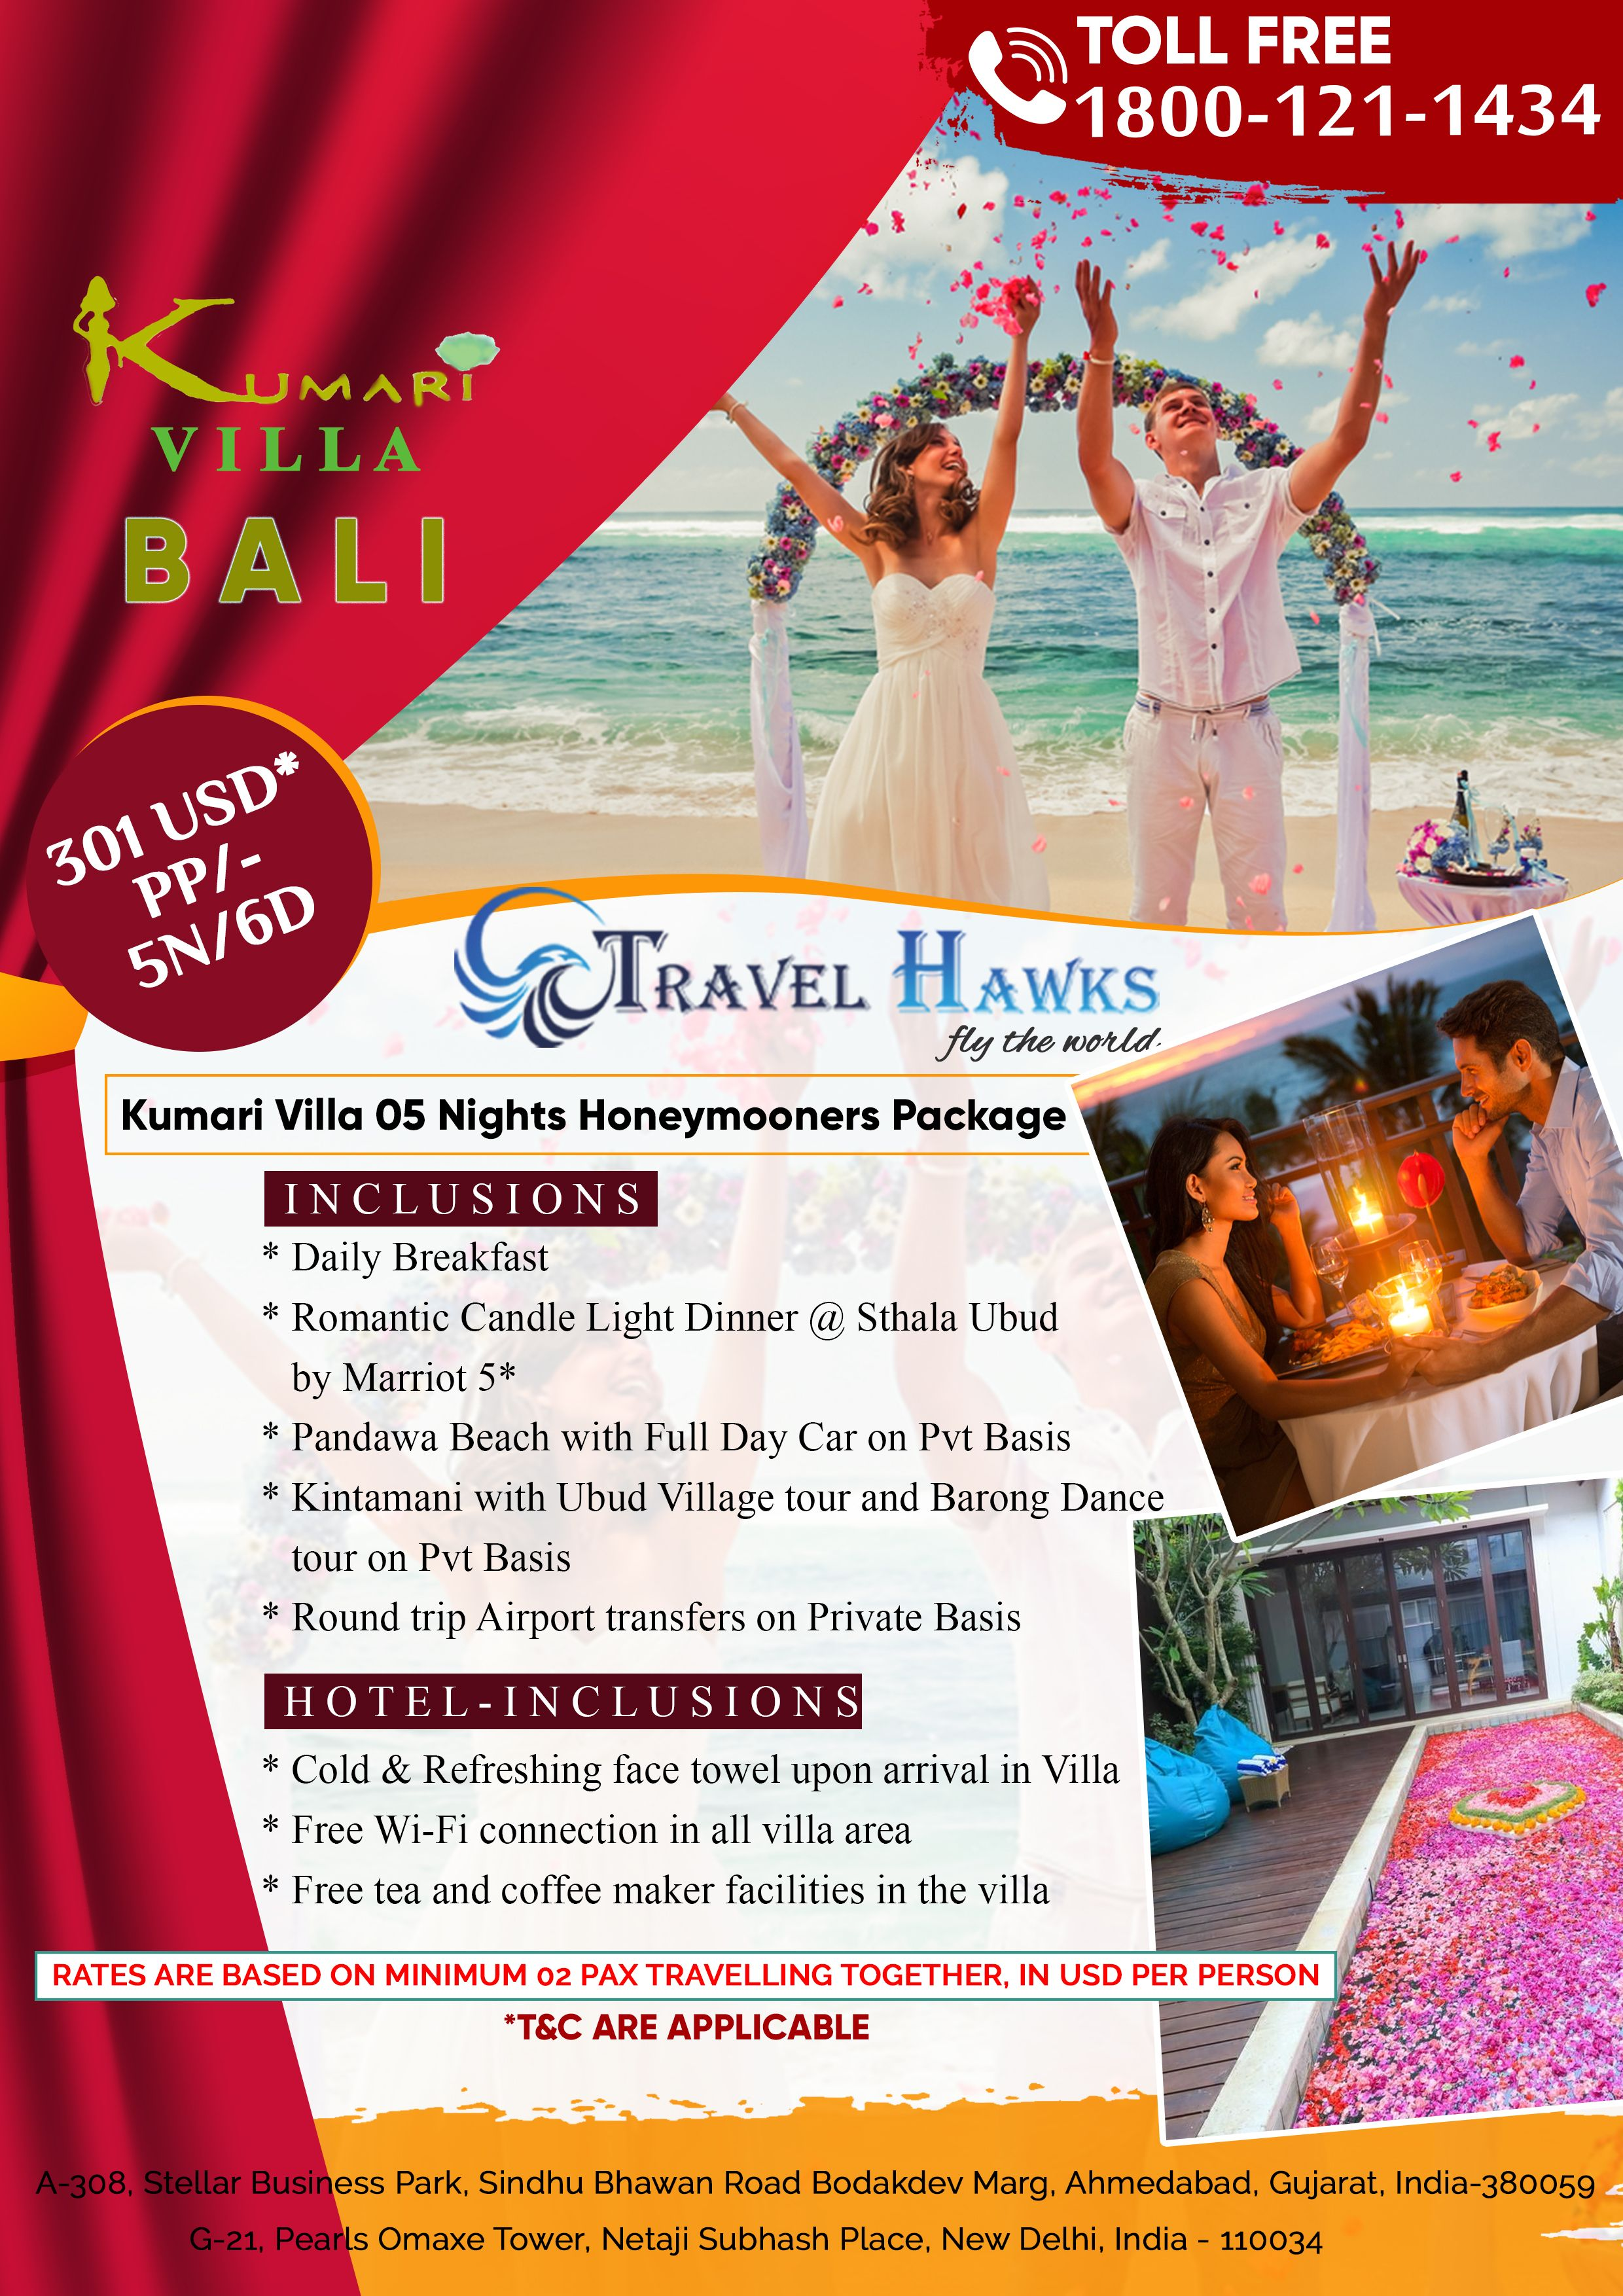 Inclusions Daily Breakfast Romantic Candle Light Dinner Sthala Ubud By Marriot 5 Pandawa Beach With Full Day Car On Pvt Basis Kintamani Wit